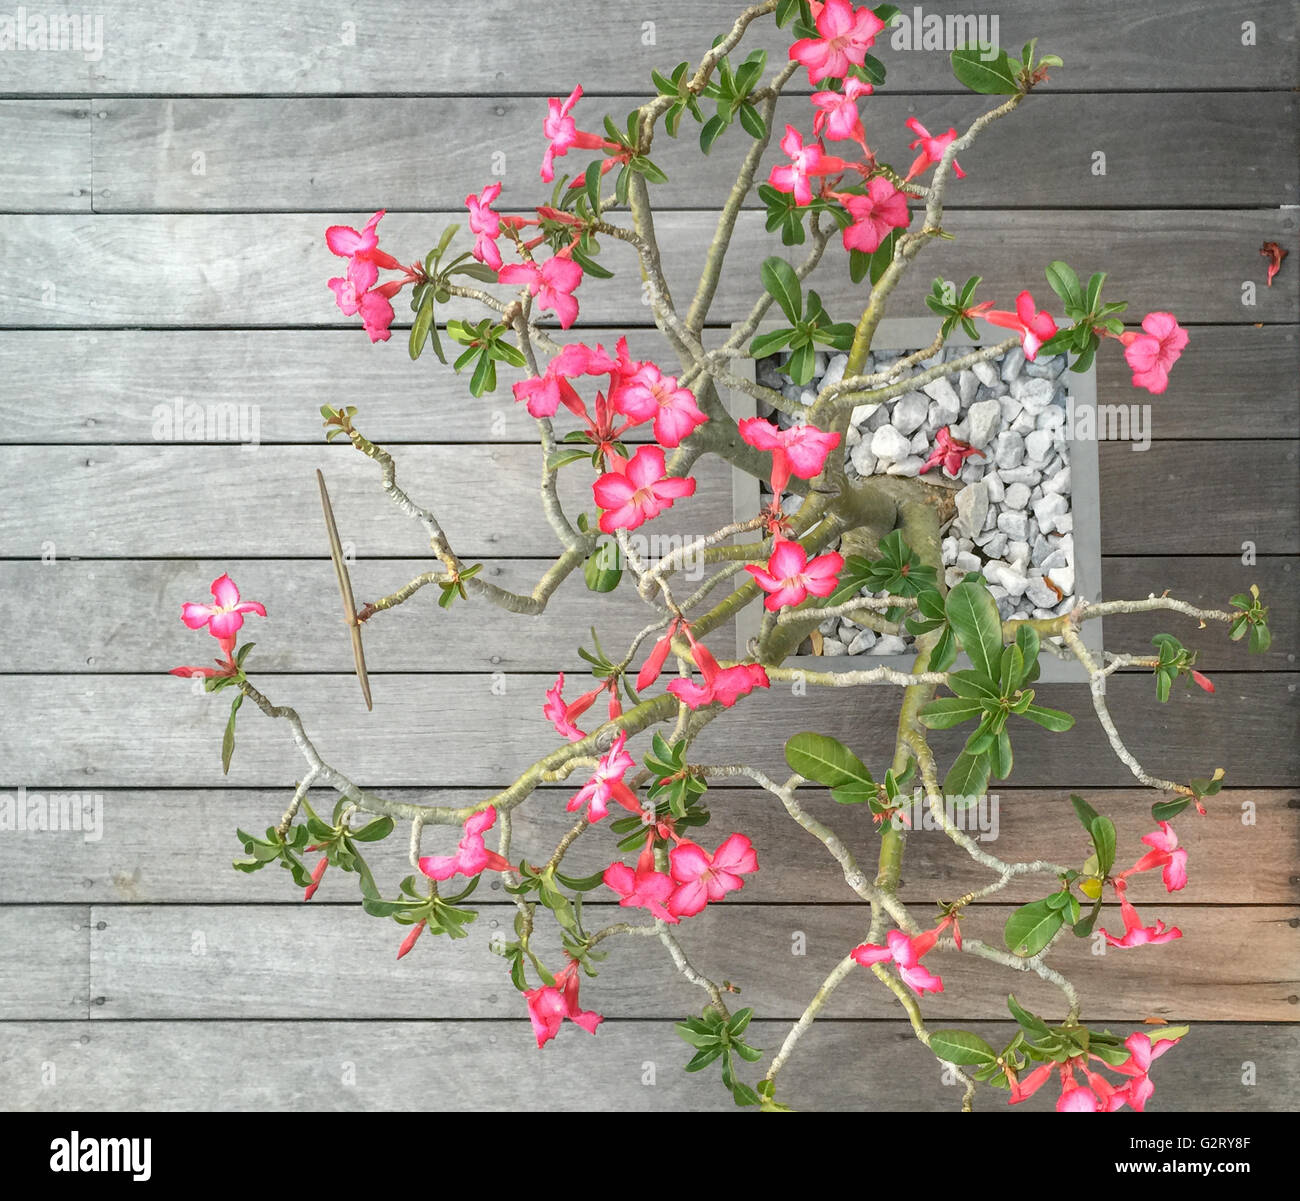 a potted plant with pink flowers against a weathered mahogany deck in St Bart's - Stock Image